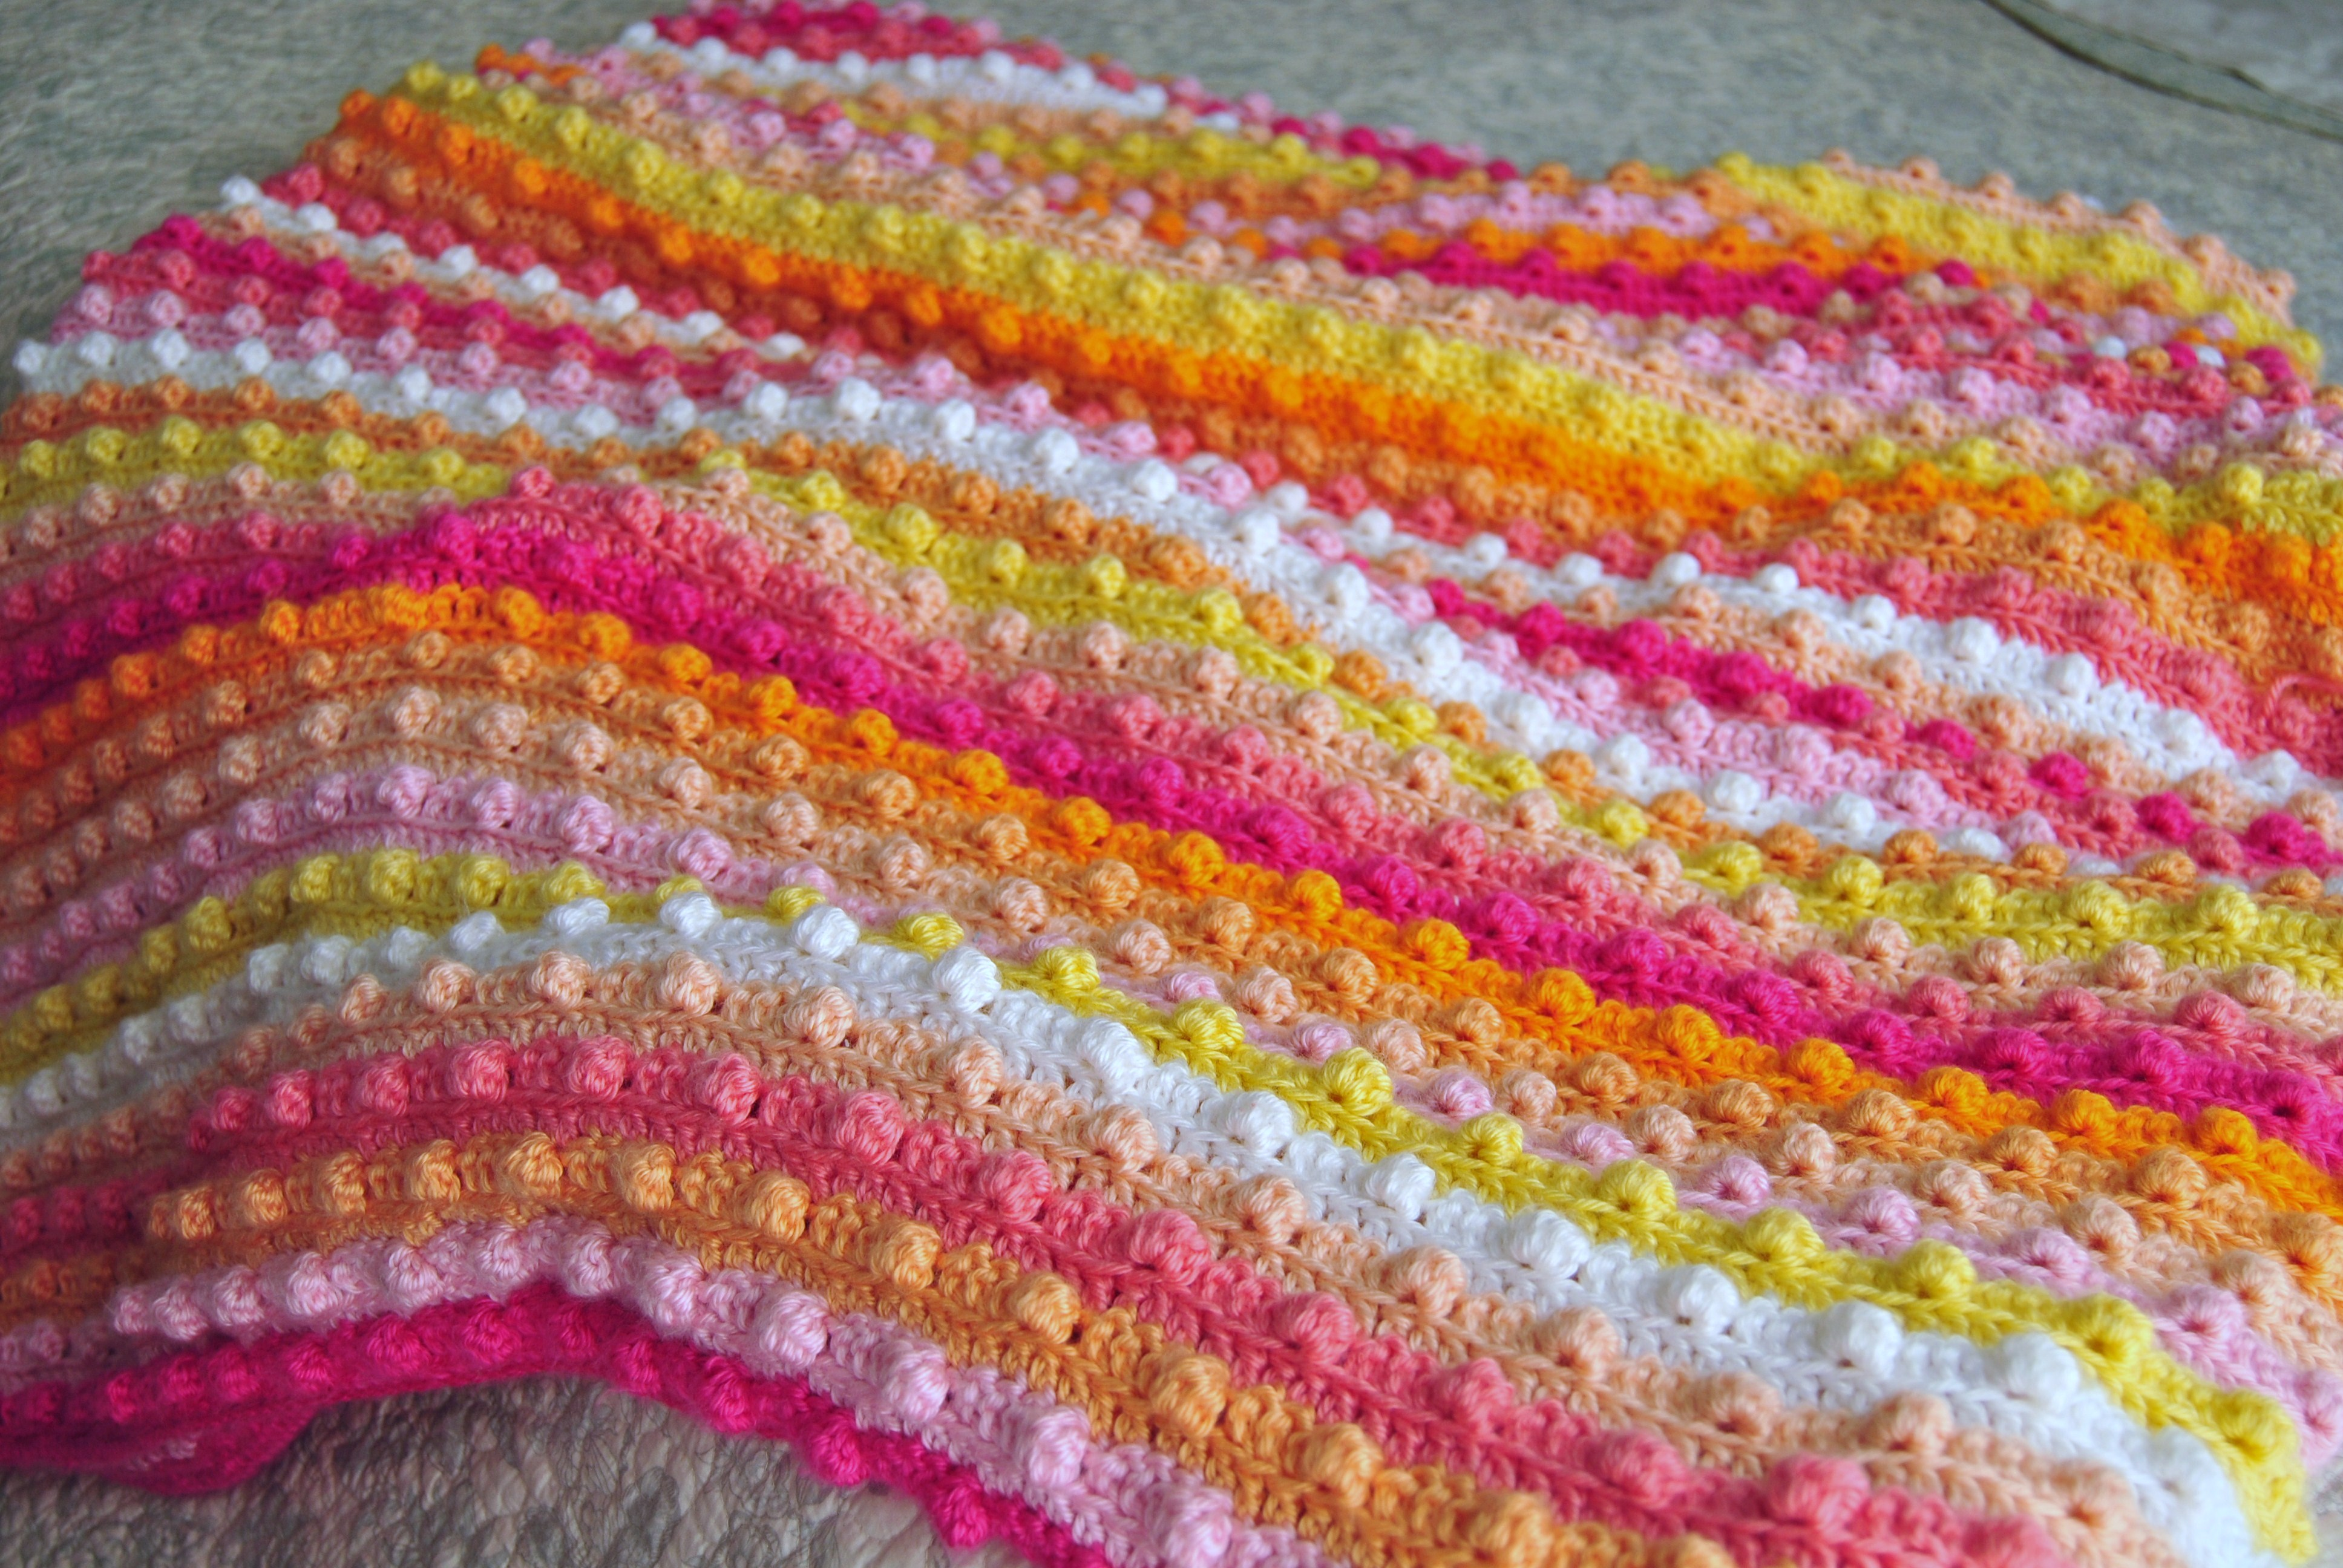 Free Crochet Bobble Stitch Afghan Patterns : Popcorn stitch, Bubble stitch, Bobble stitch Lessy Lus